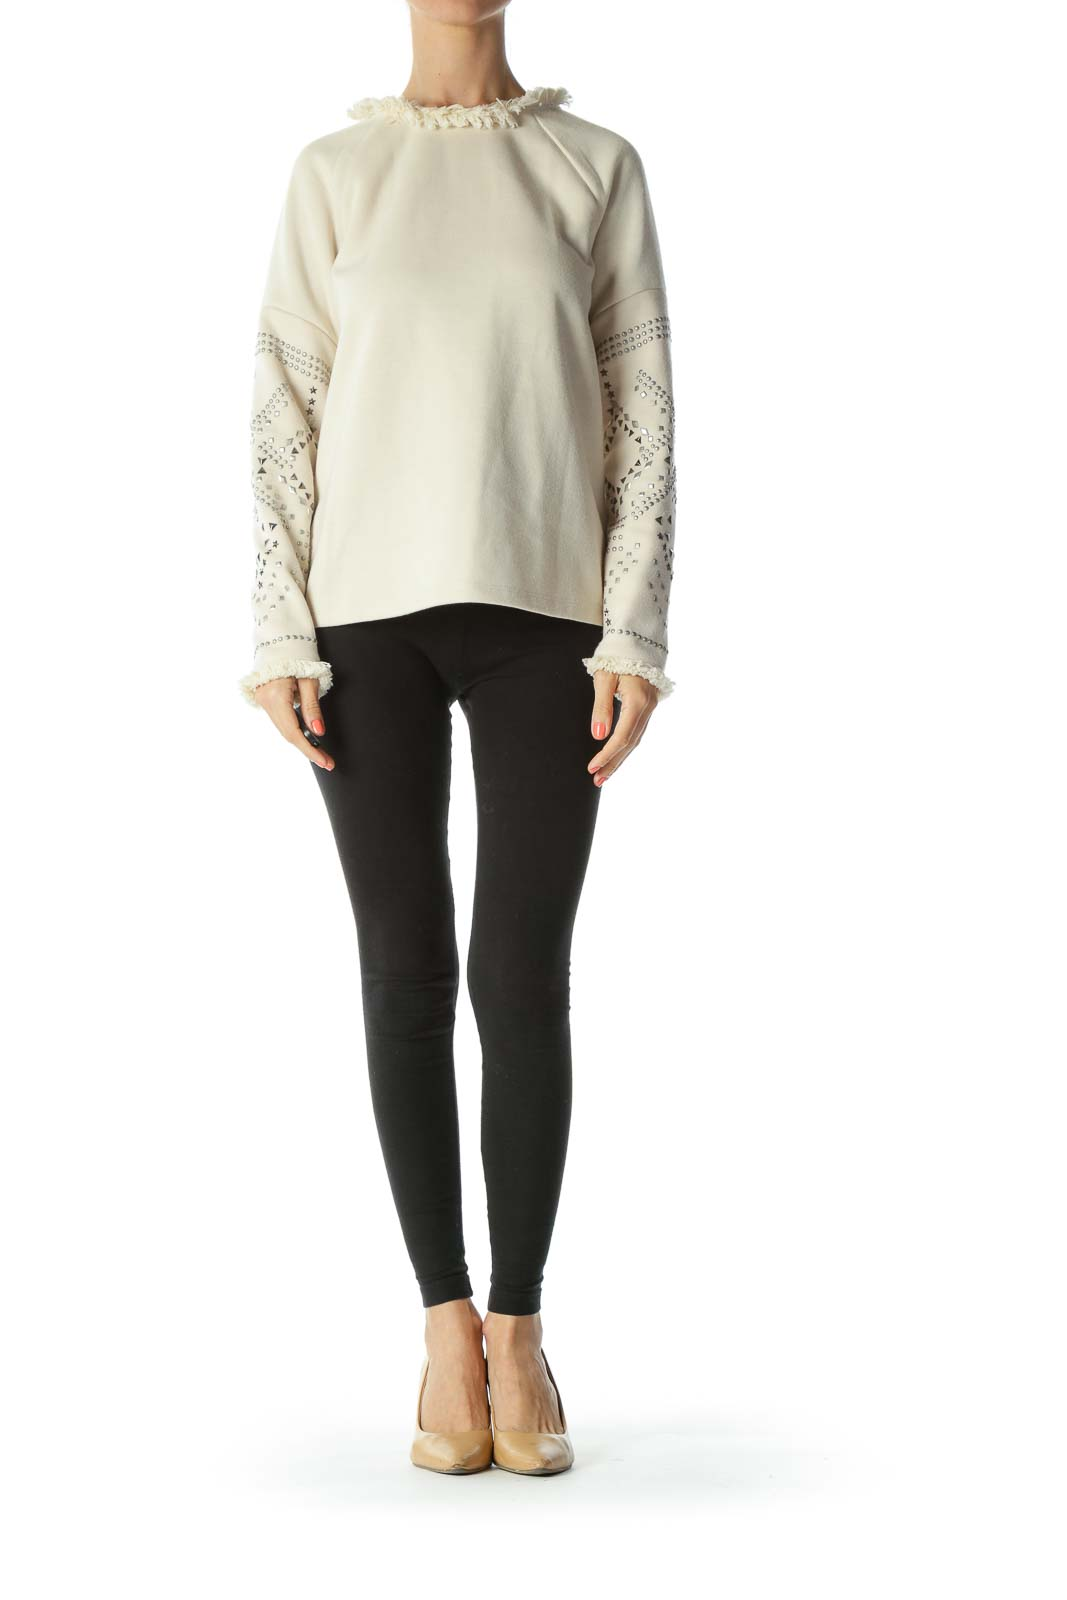 Cream Fringed-Neckline Bejewel-Sleeved Long-Sleeve Sweater